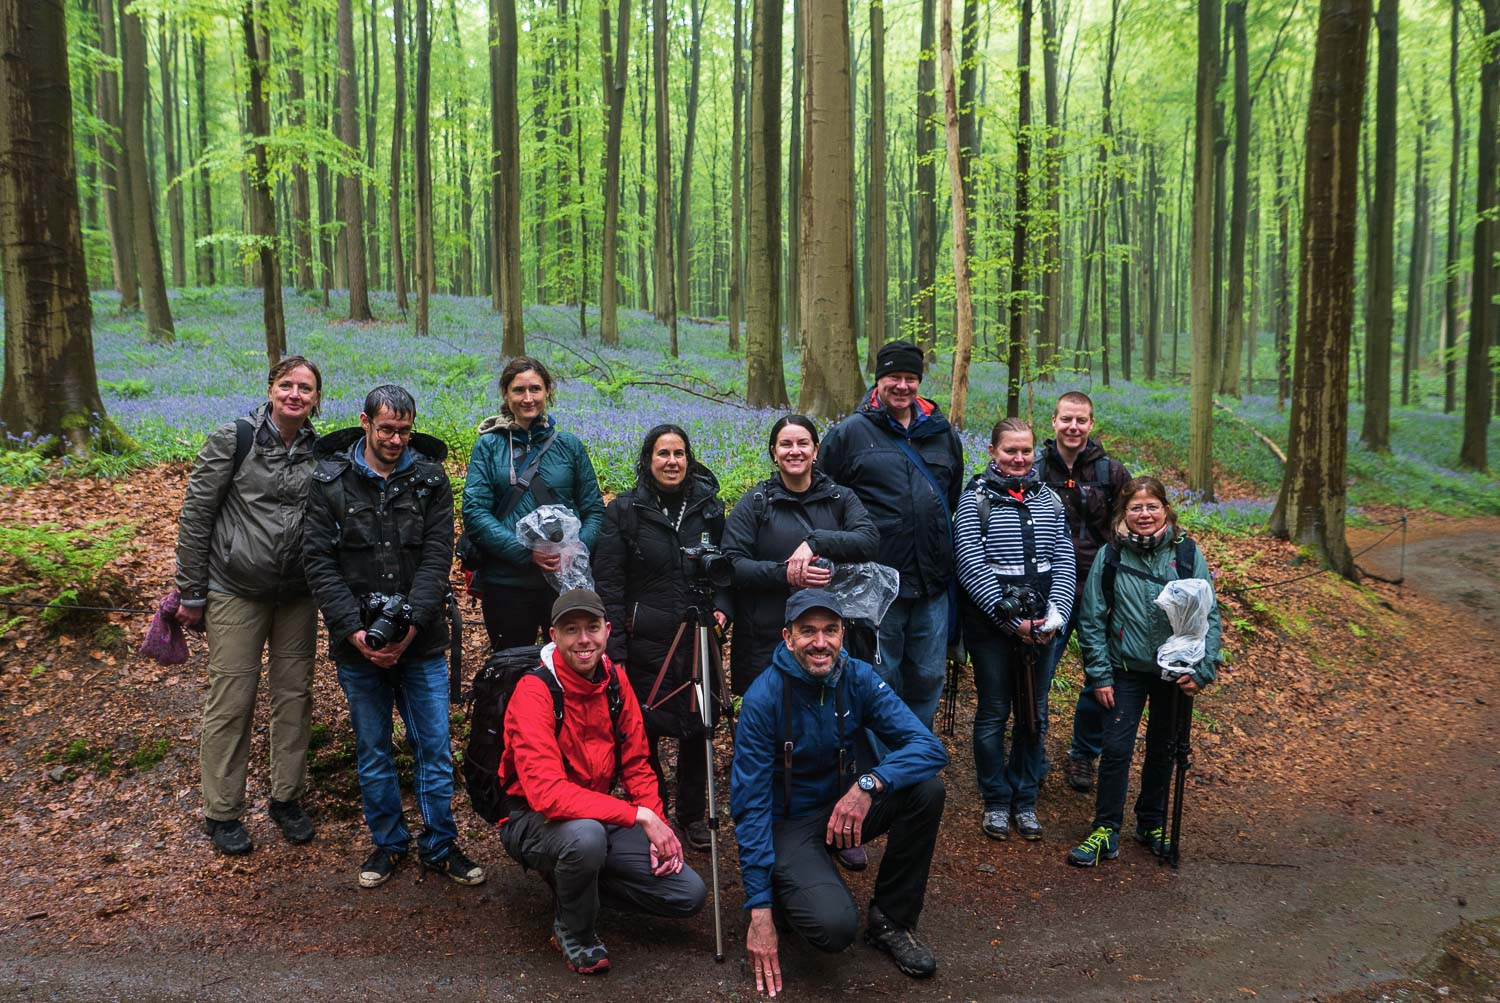 Group picture of the April 2018 photography workshop in the Hallerbos